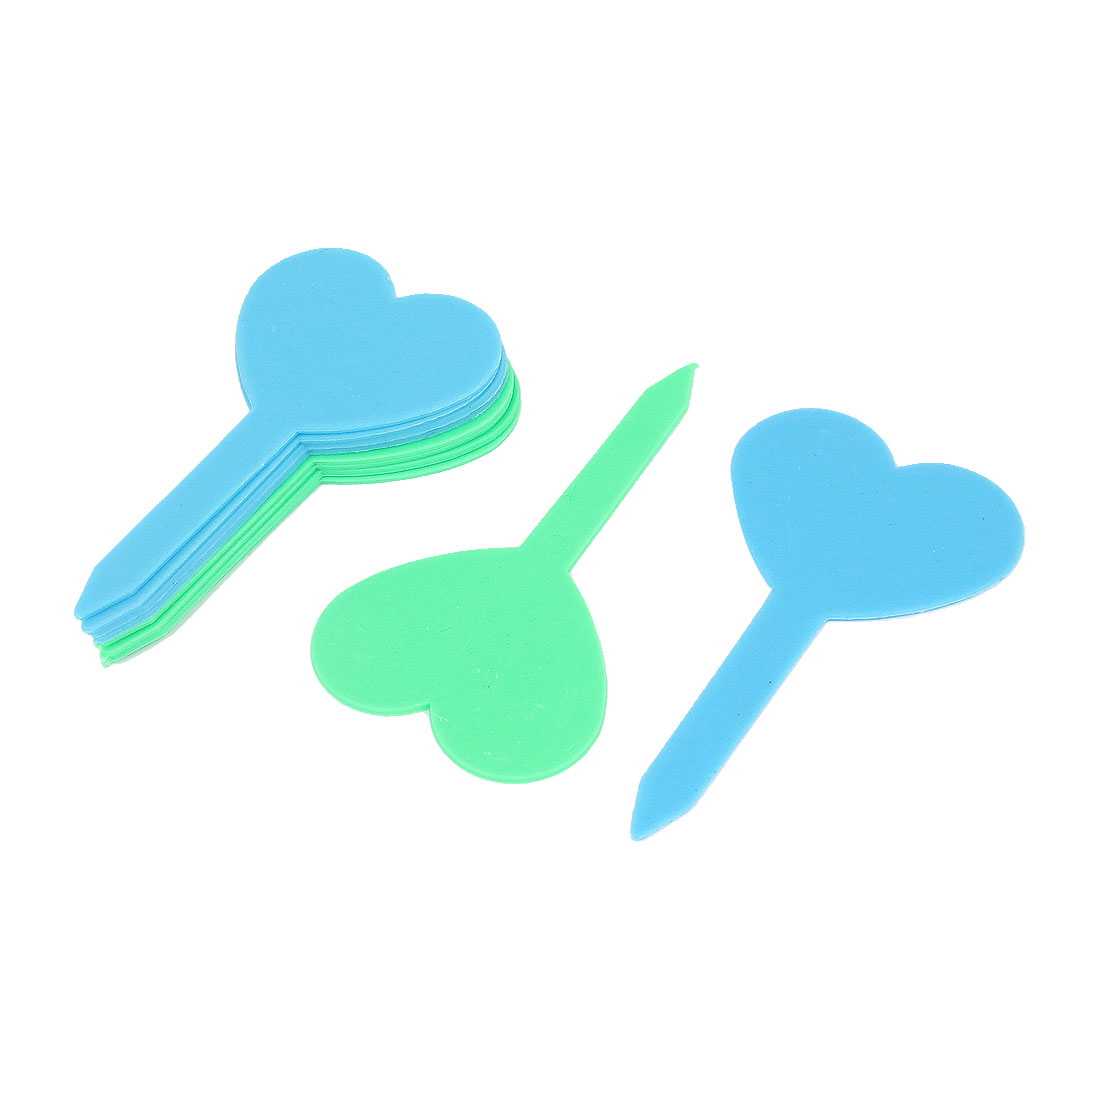 Green Blue Heart Shaped Garden Yard Potted Plants Tag Stick Label Marker 10pcs